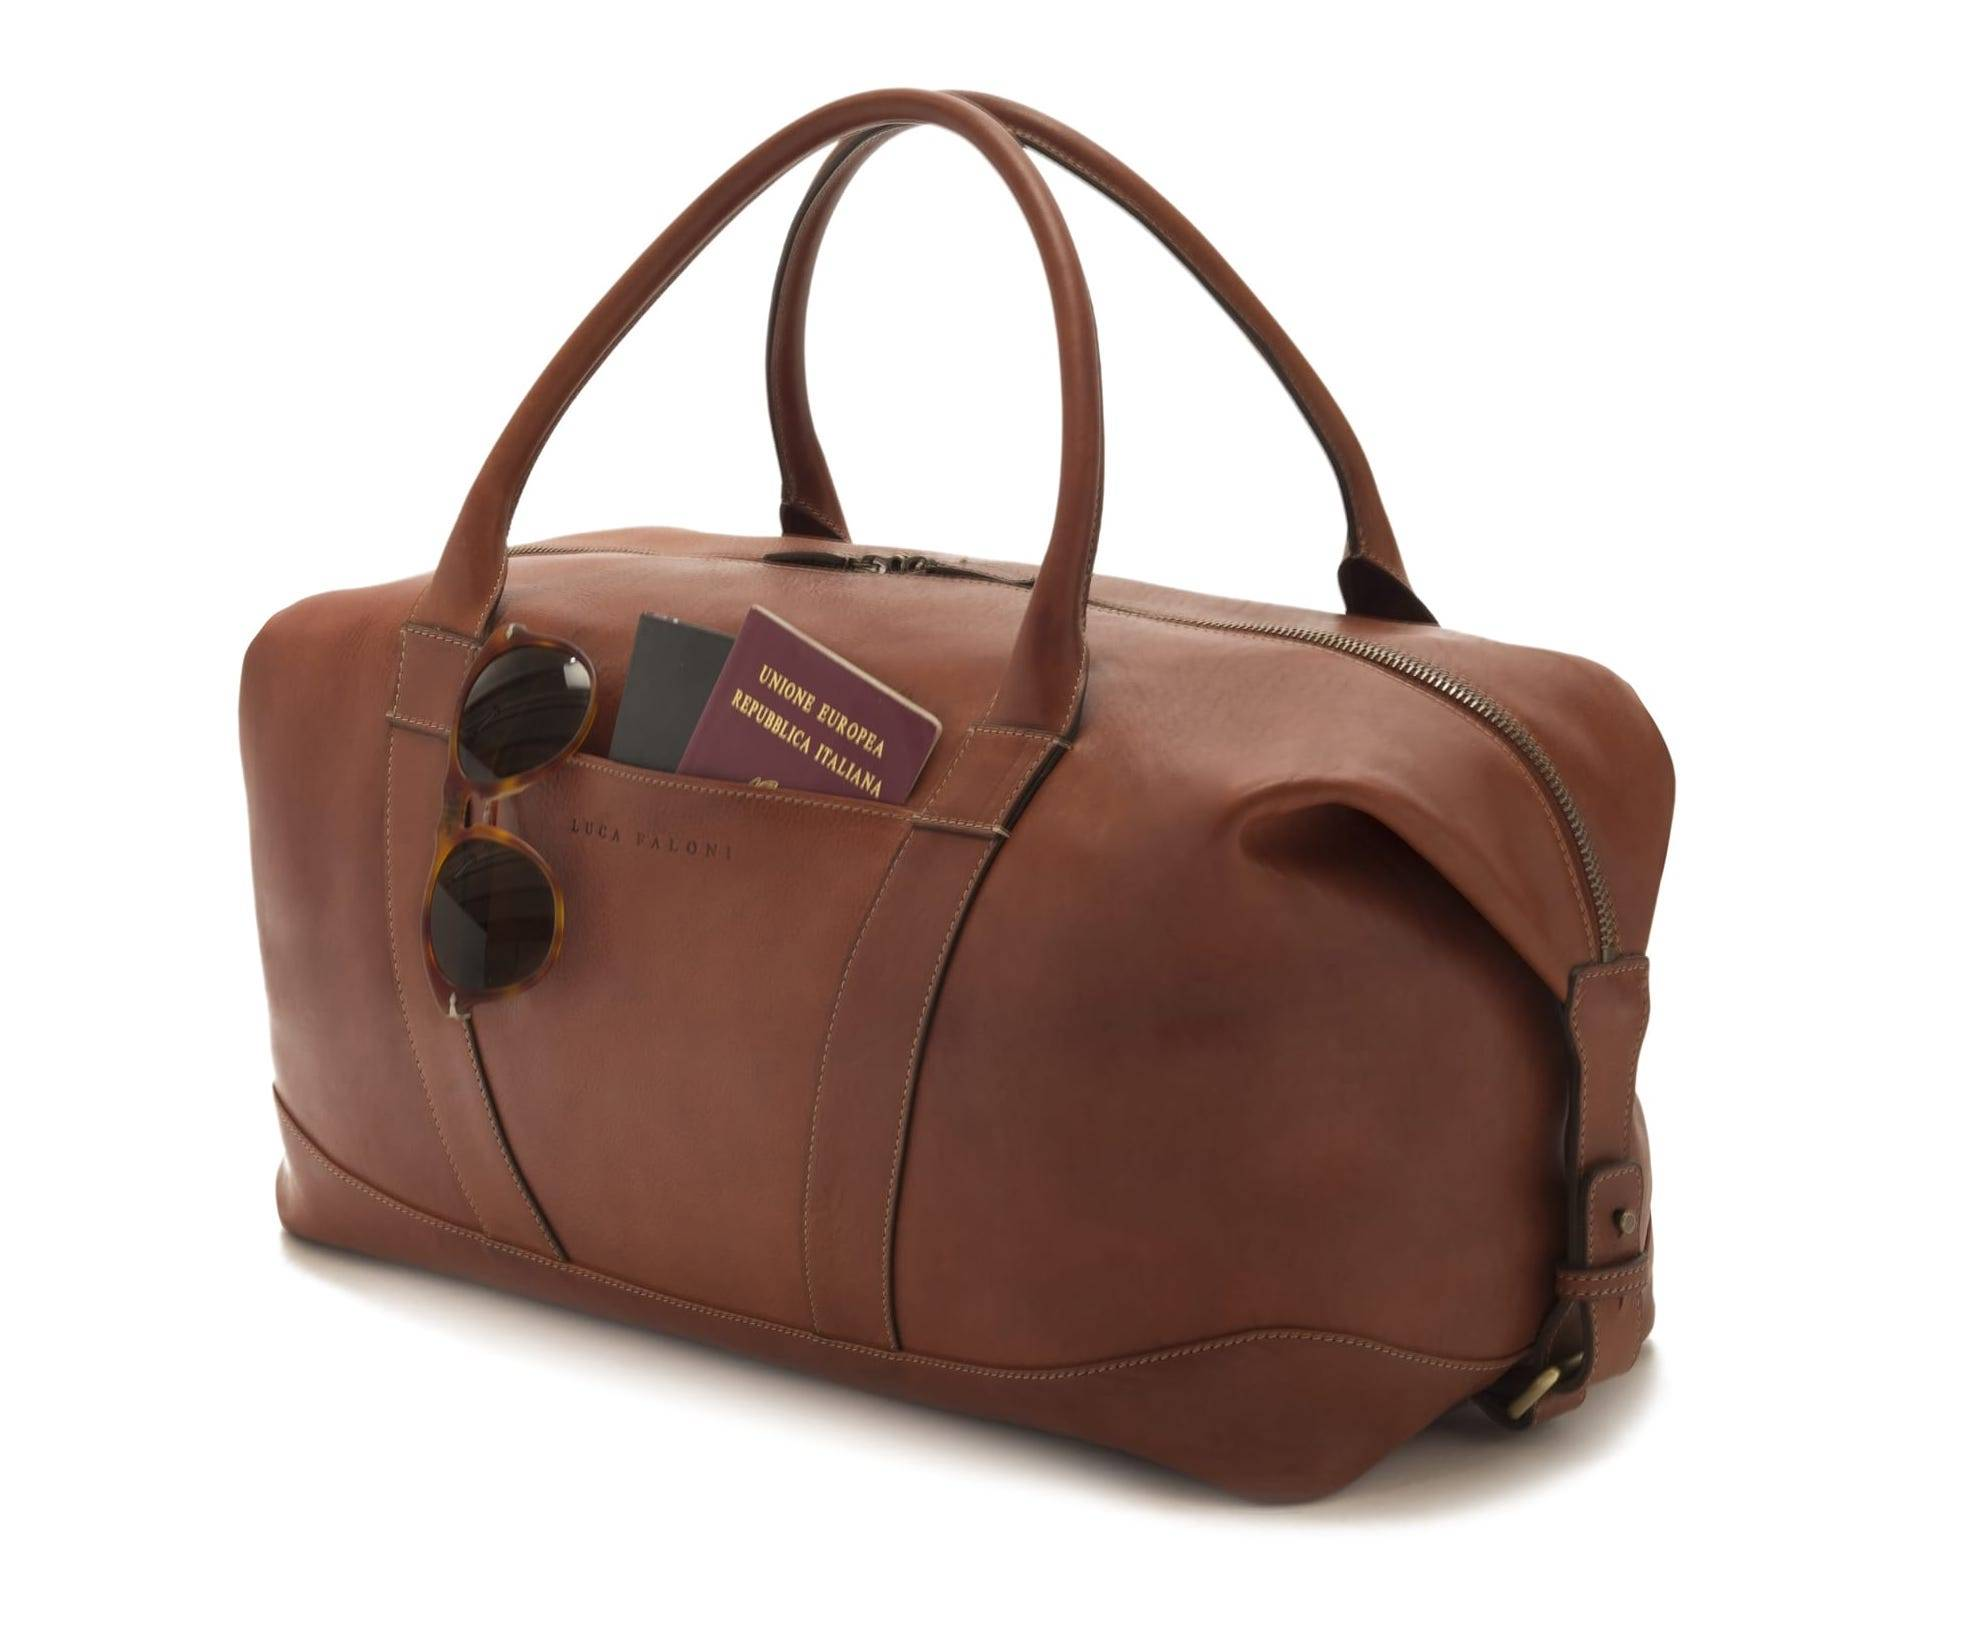 Luca Faloni Weekender Travel Bag Made in Italy